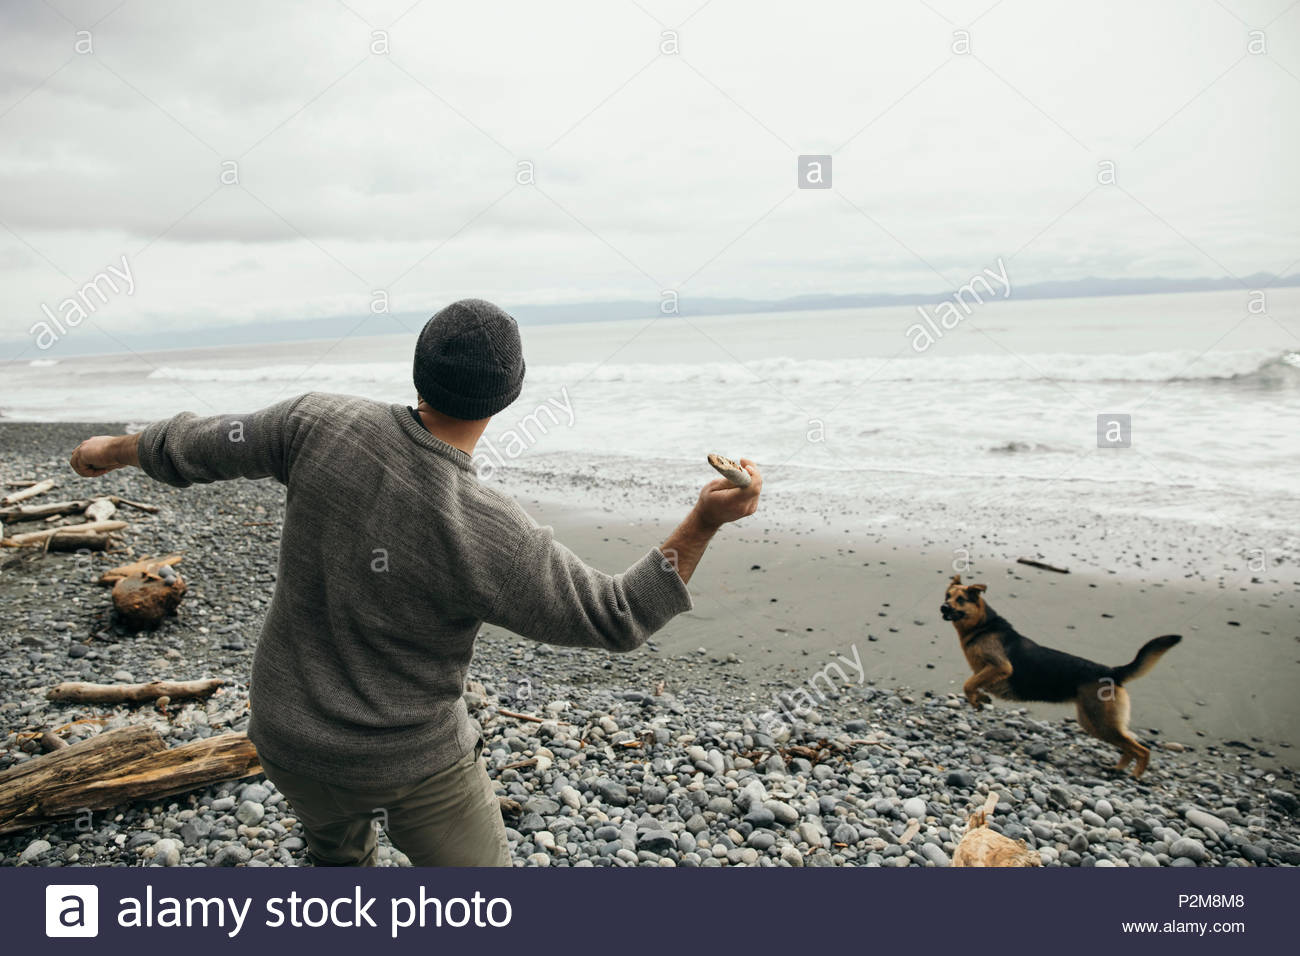 Man throwing stick for dog on rugged beach - Stock Image